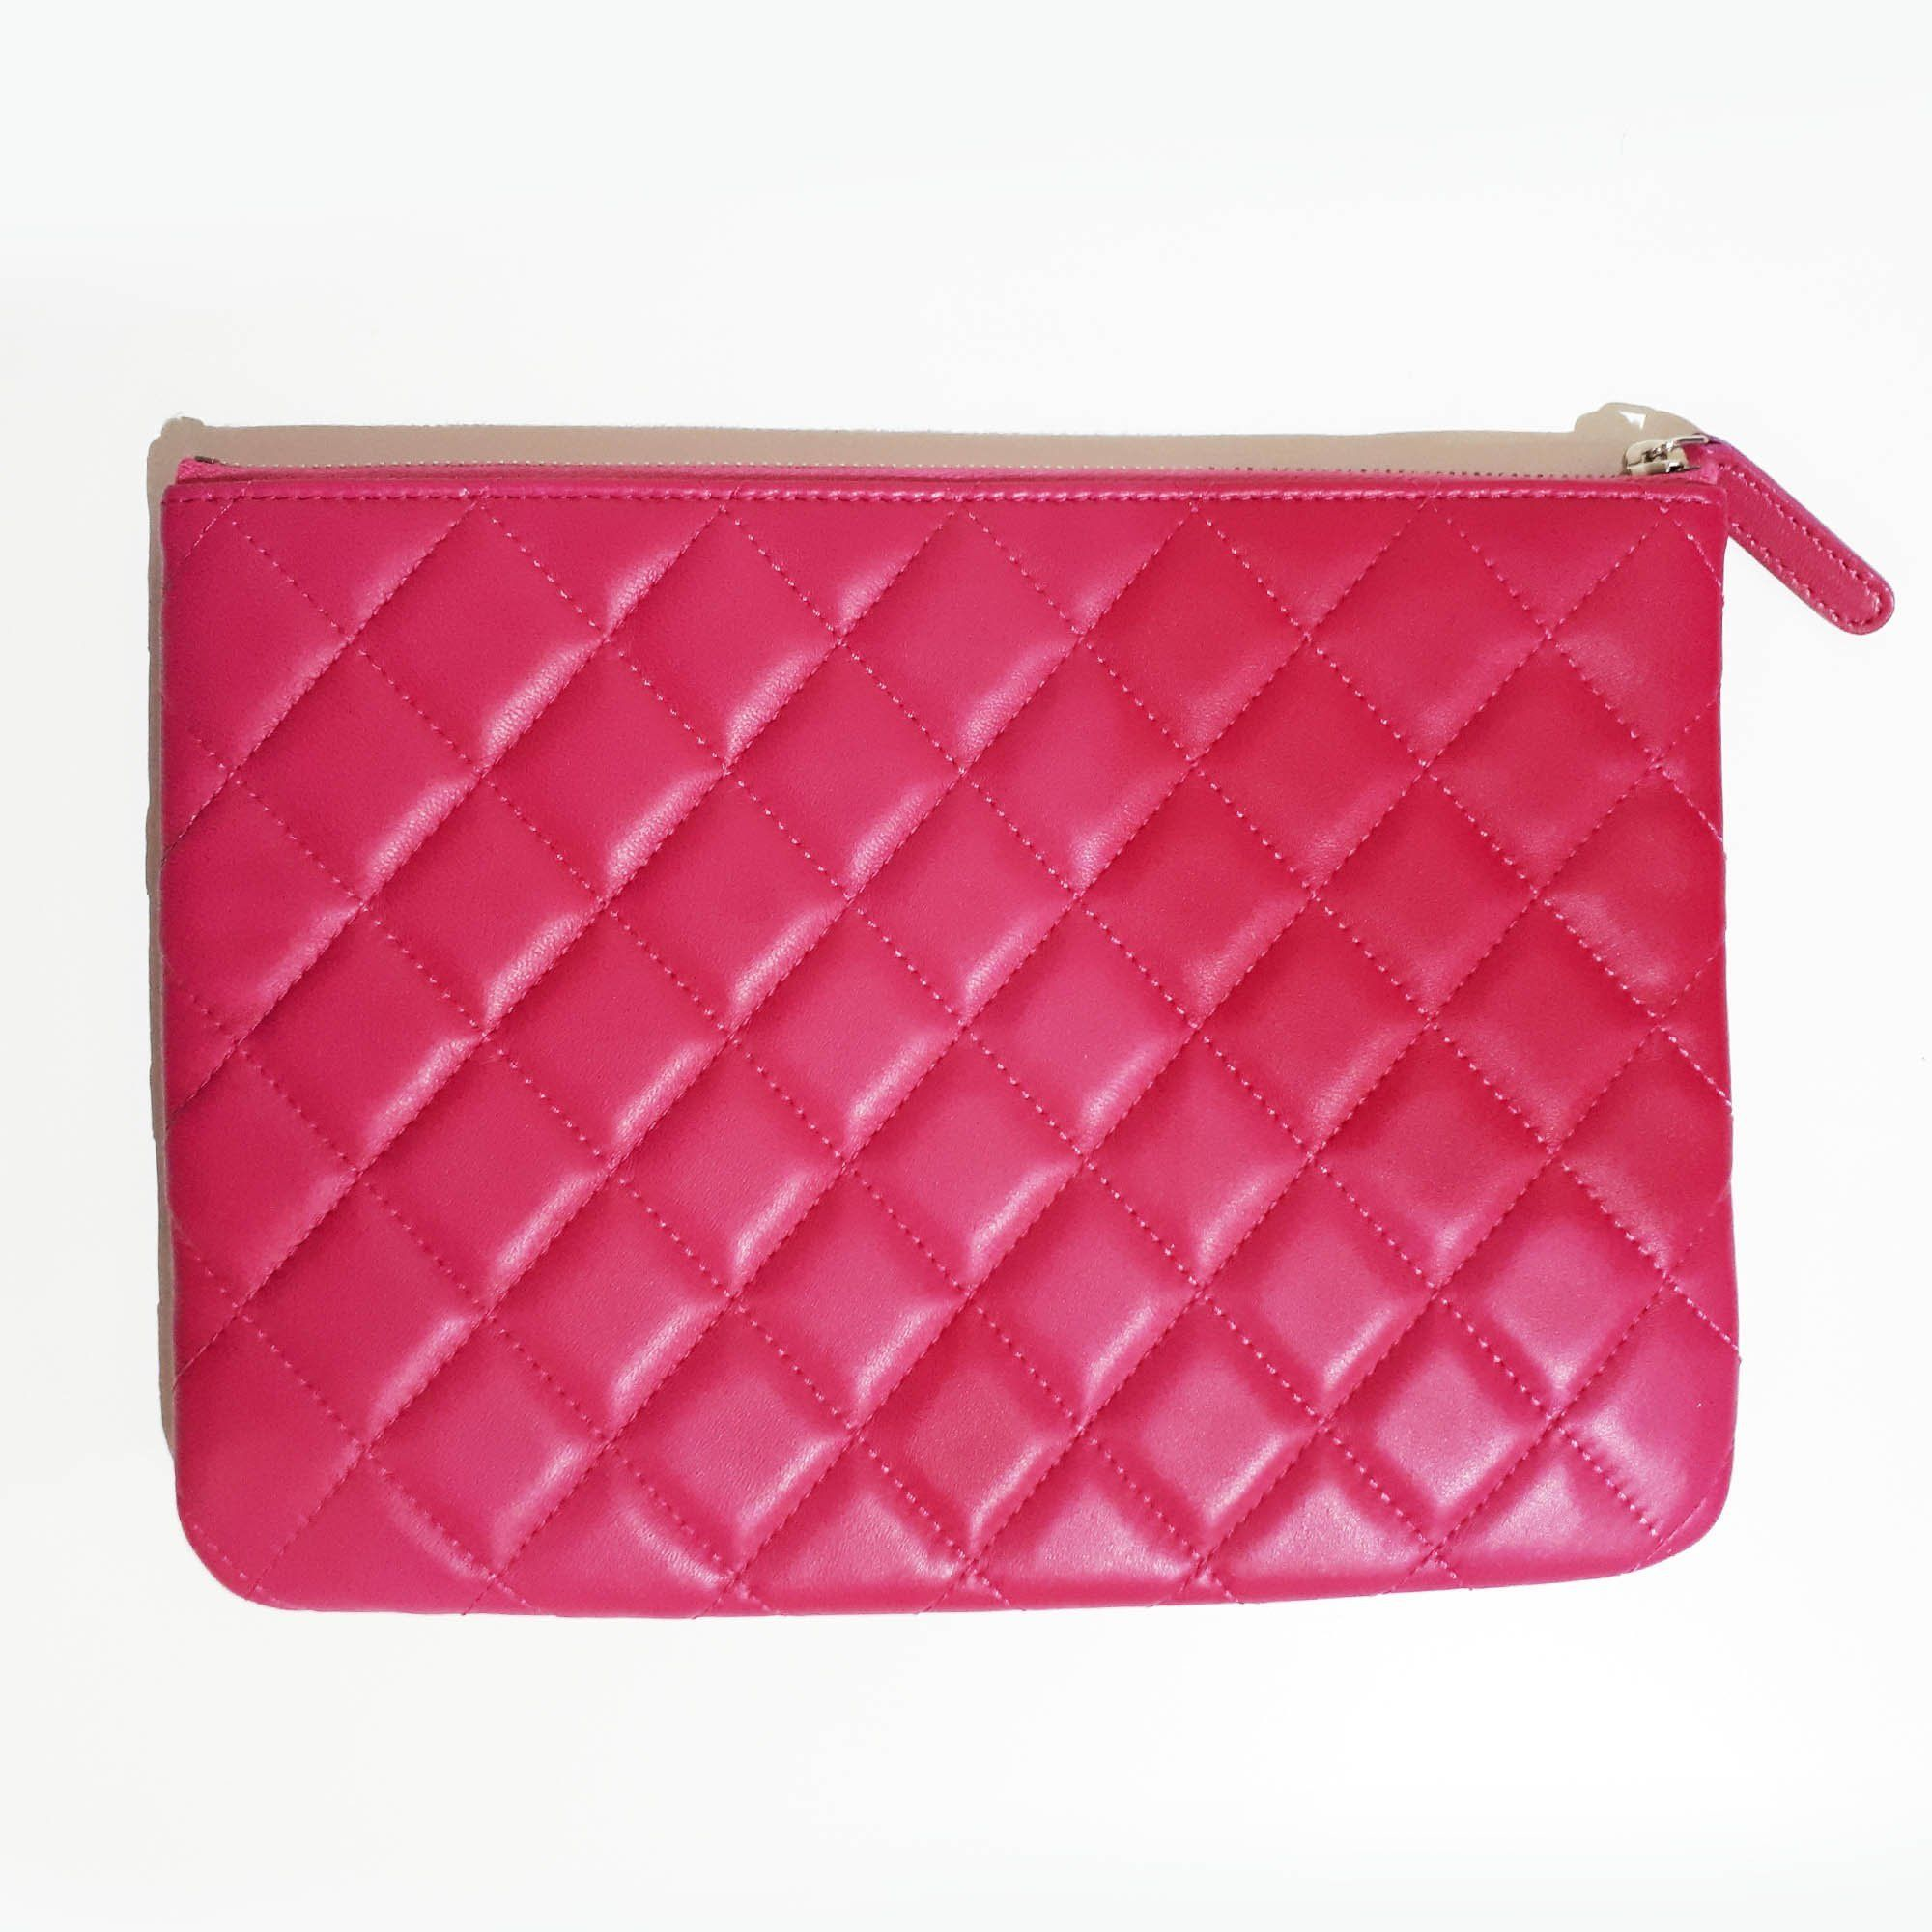 Chanel Pink Quilted Pouch